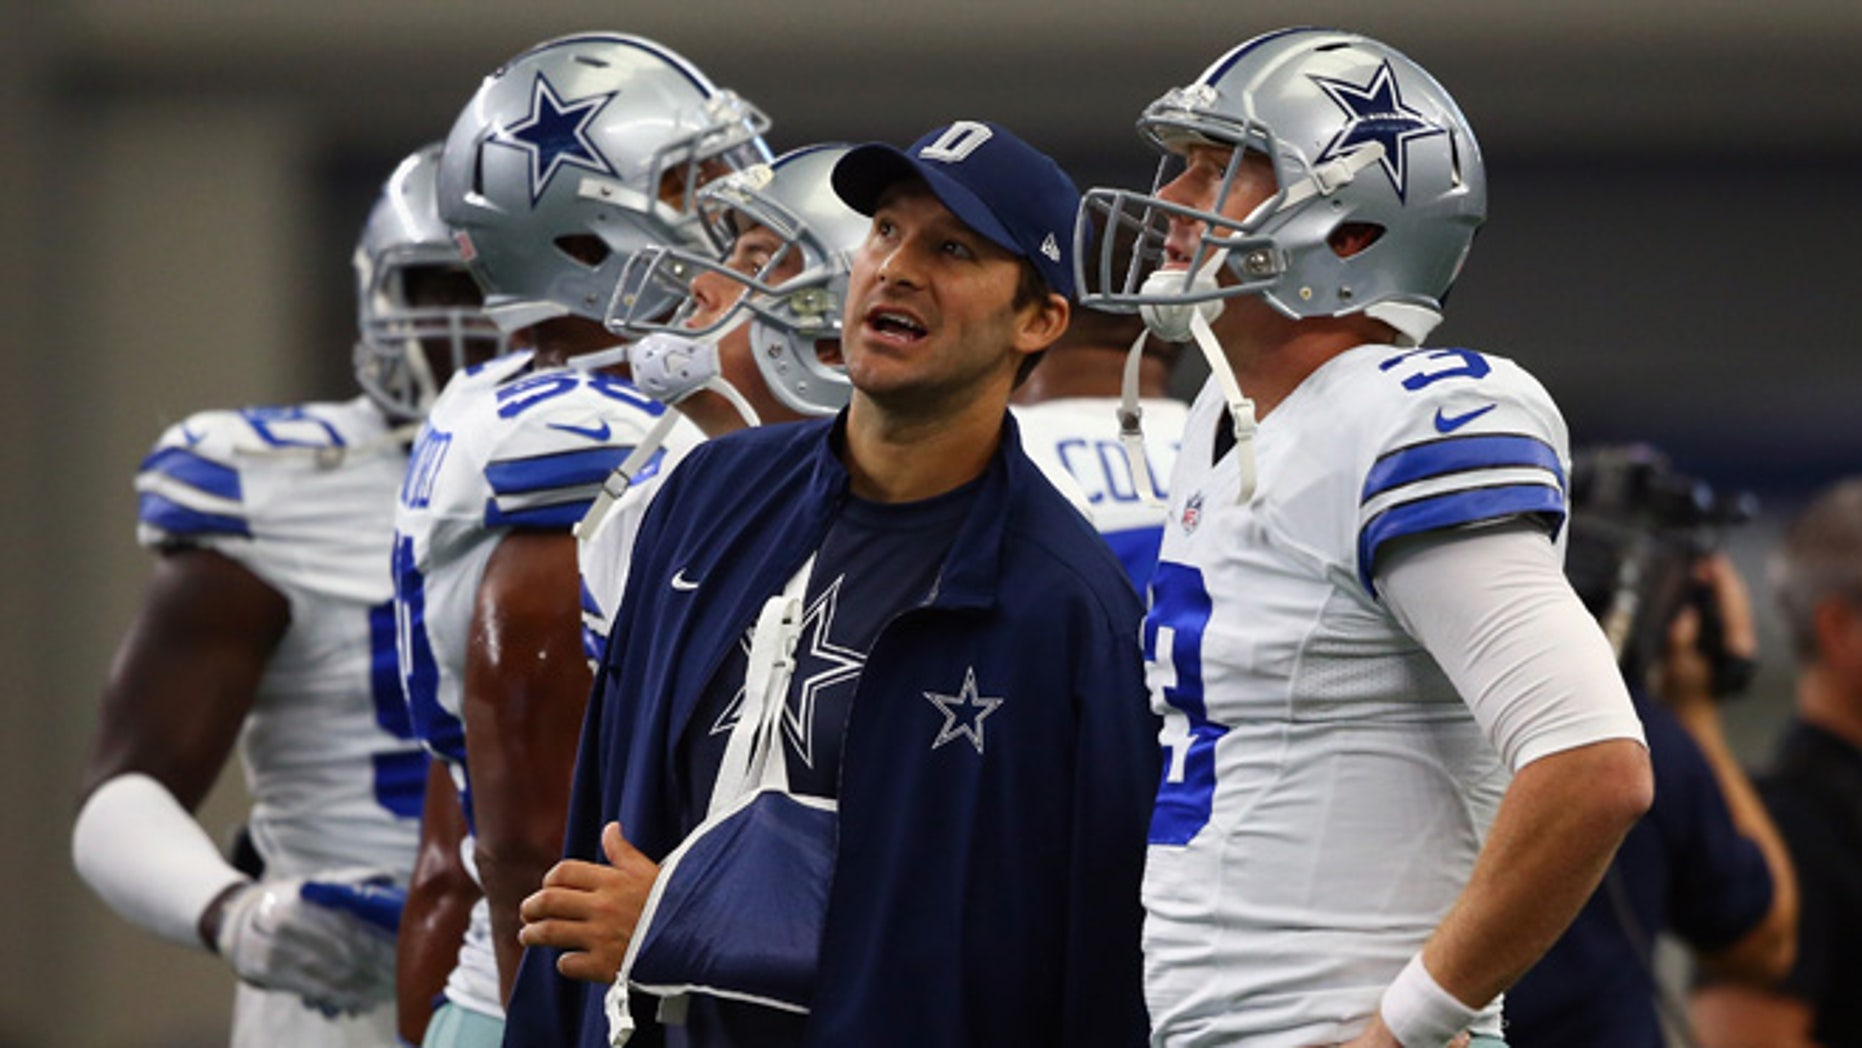 ARLINGTON, TX - SEPTEMBER 27:  (L-R) Tony Romo #9 of the Dallas Cowboys talks with  Brandon Weeden #3 before a game against the Atlanta Falcons at AT&T Stadium on September 27, 2015 in Arlington, Texas.  (Photo by Ronald Martinez/Getty Images)